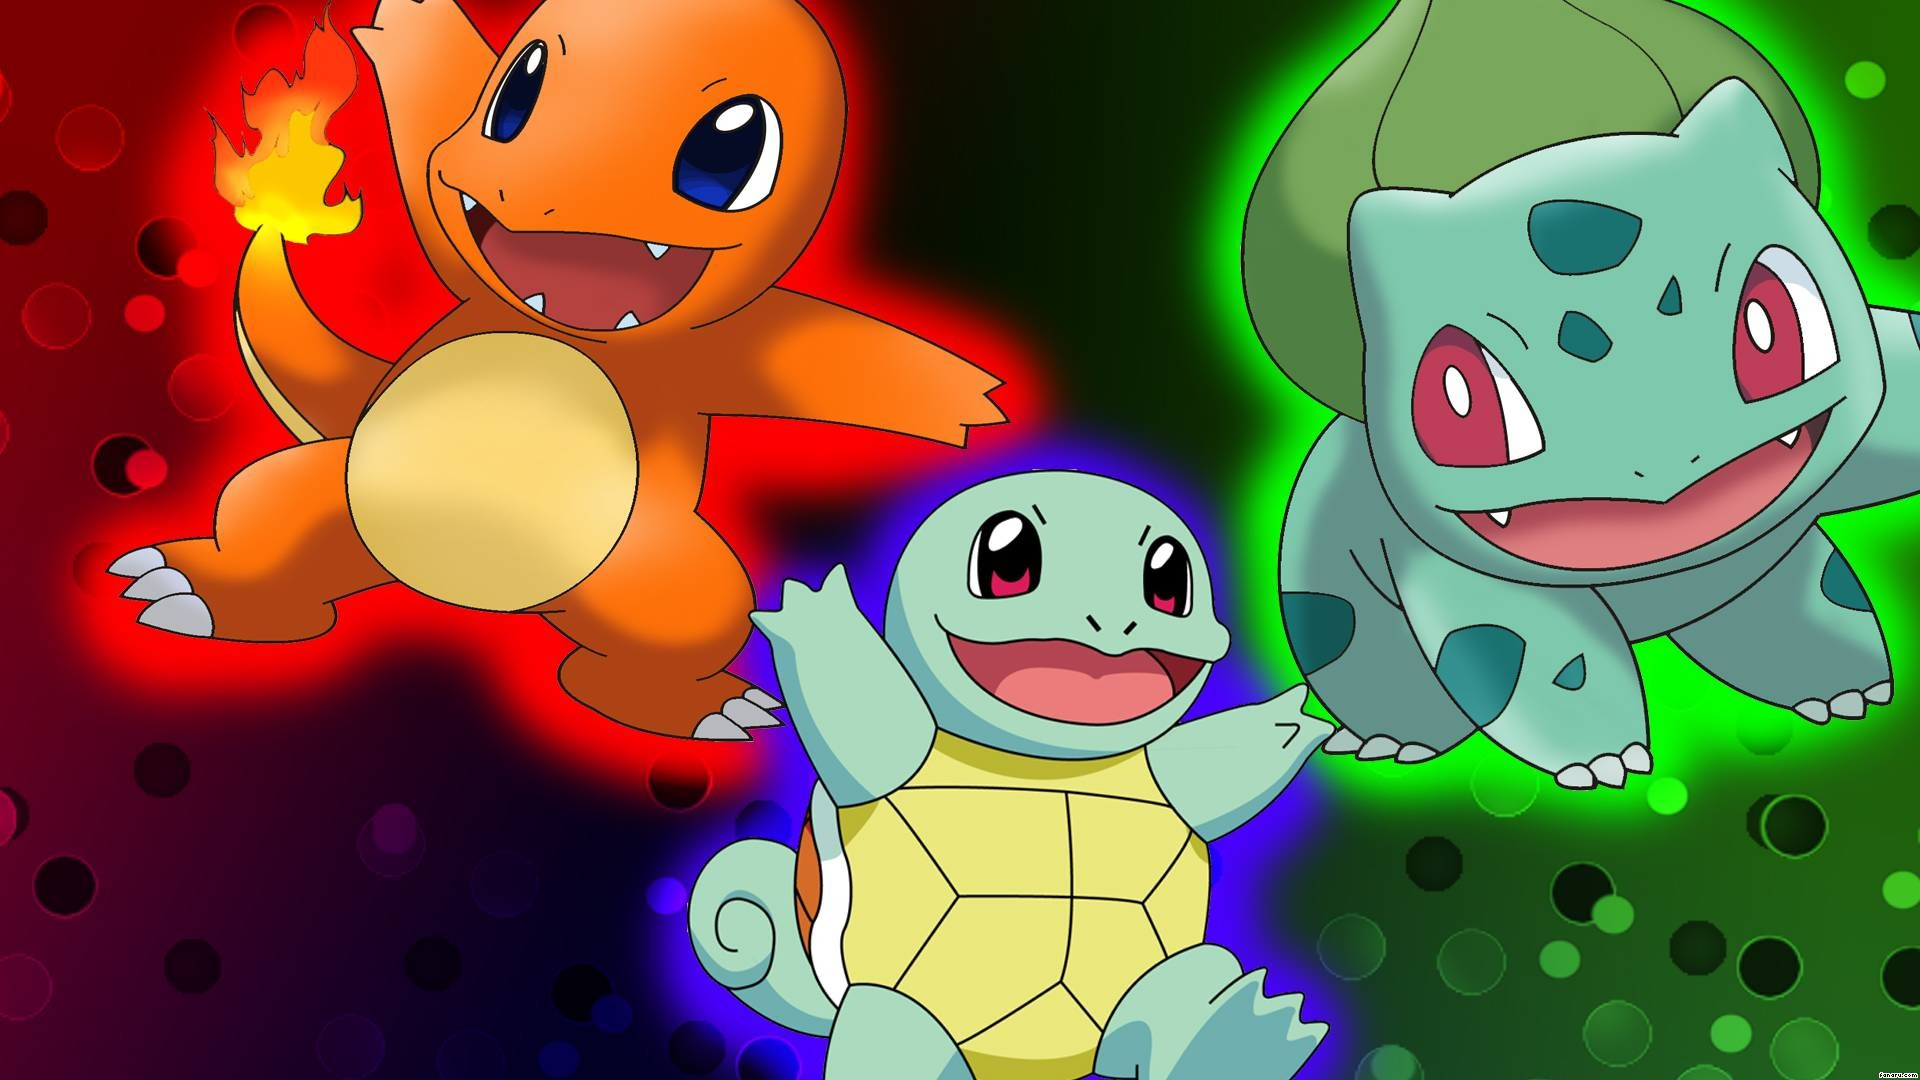 1920x1080 ... Starter Pokemon Wallpapers, Starter Pokemon HD Wallpapers Collection:  Item 6524540